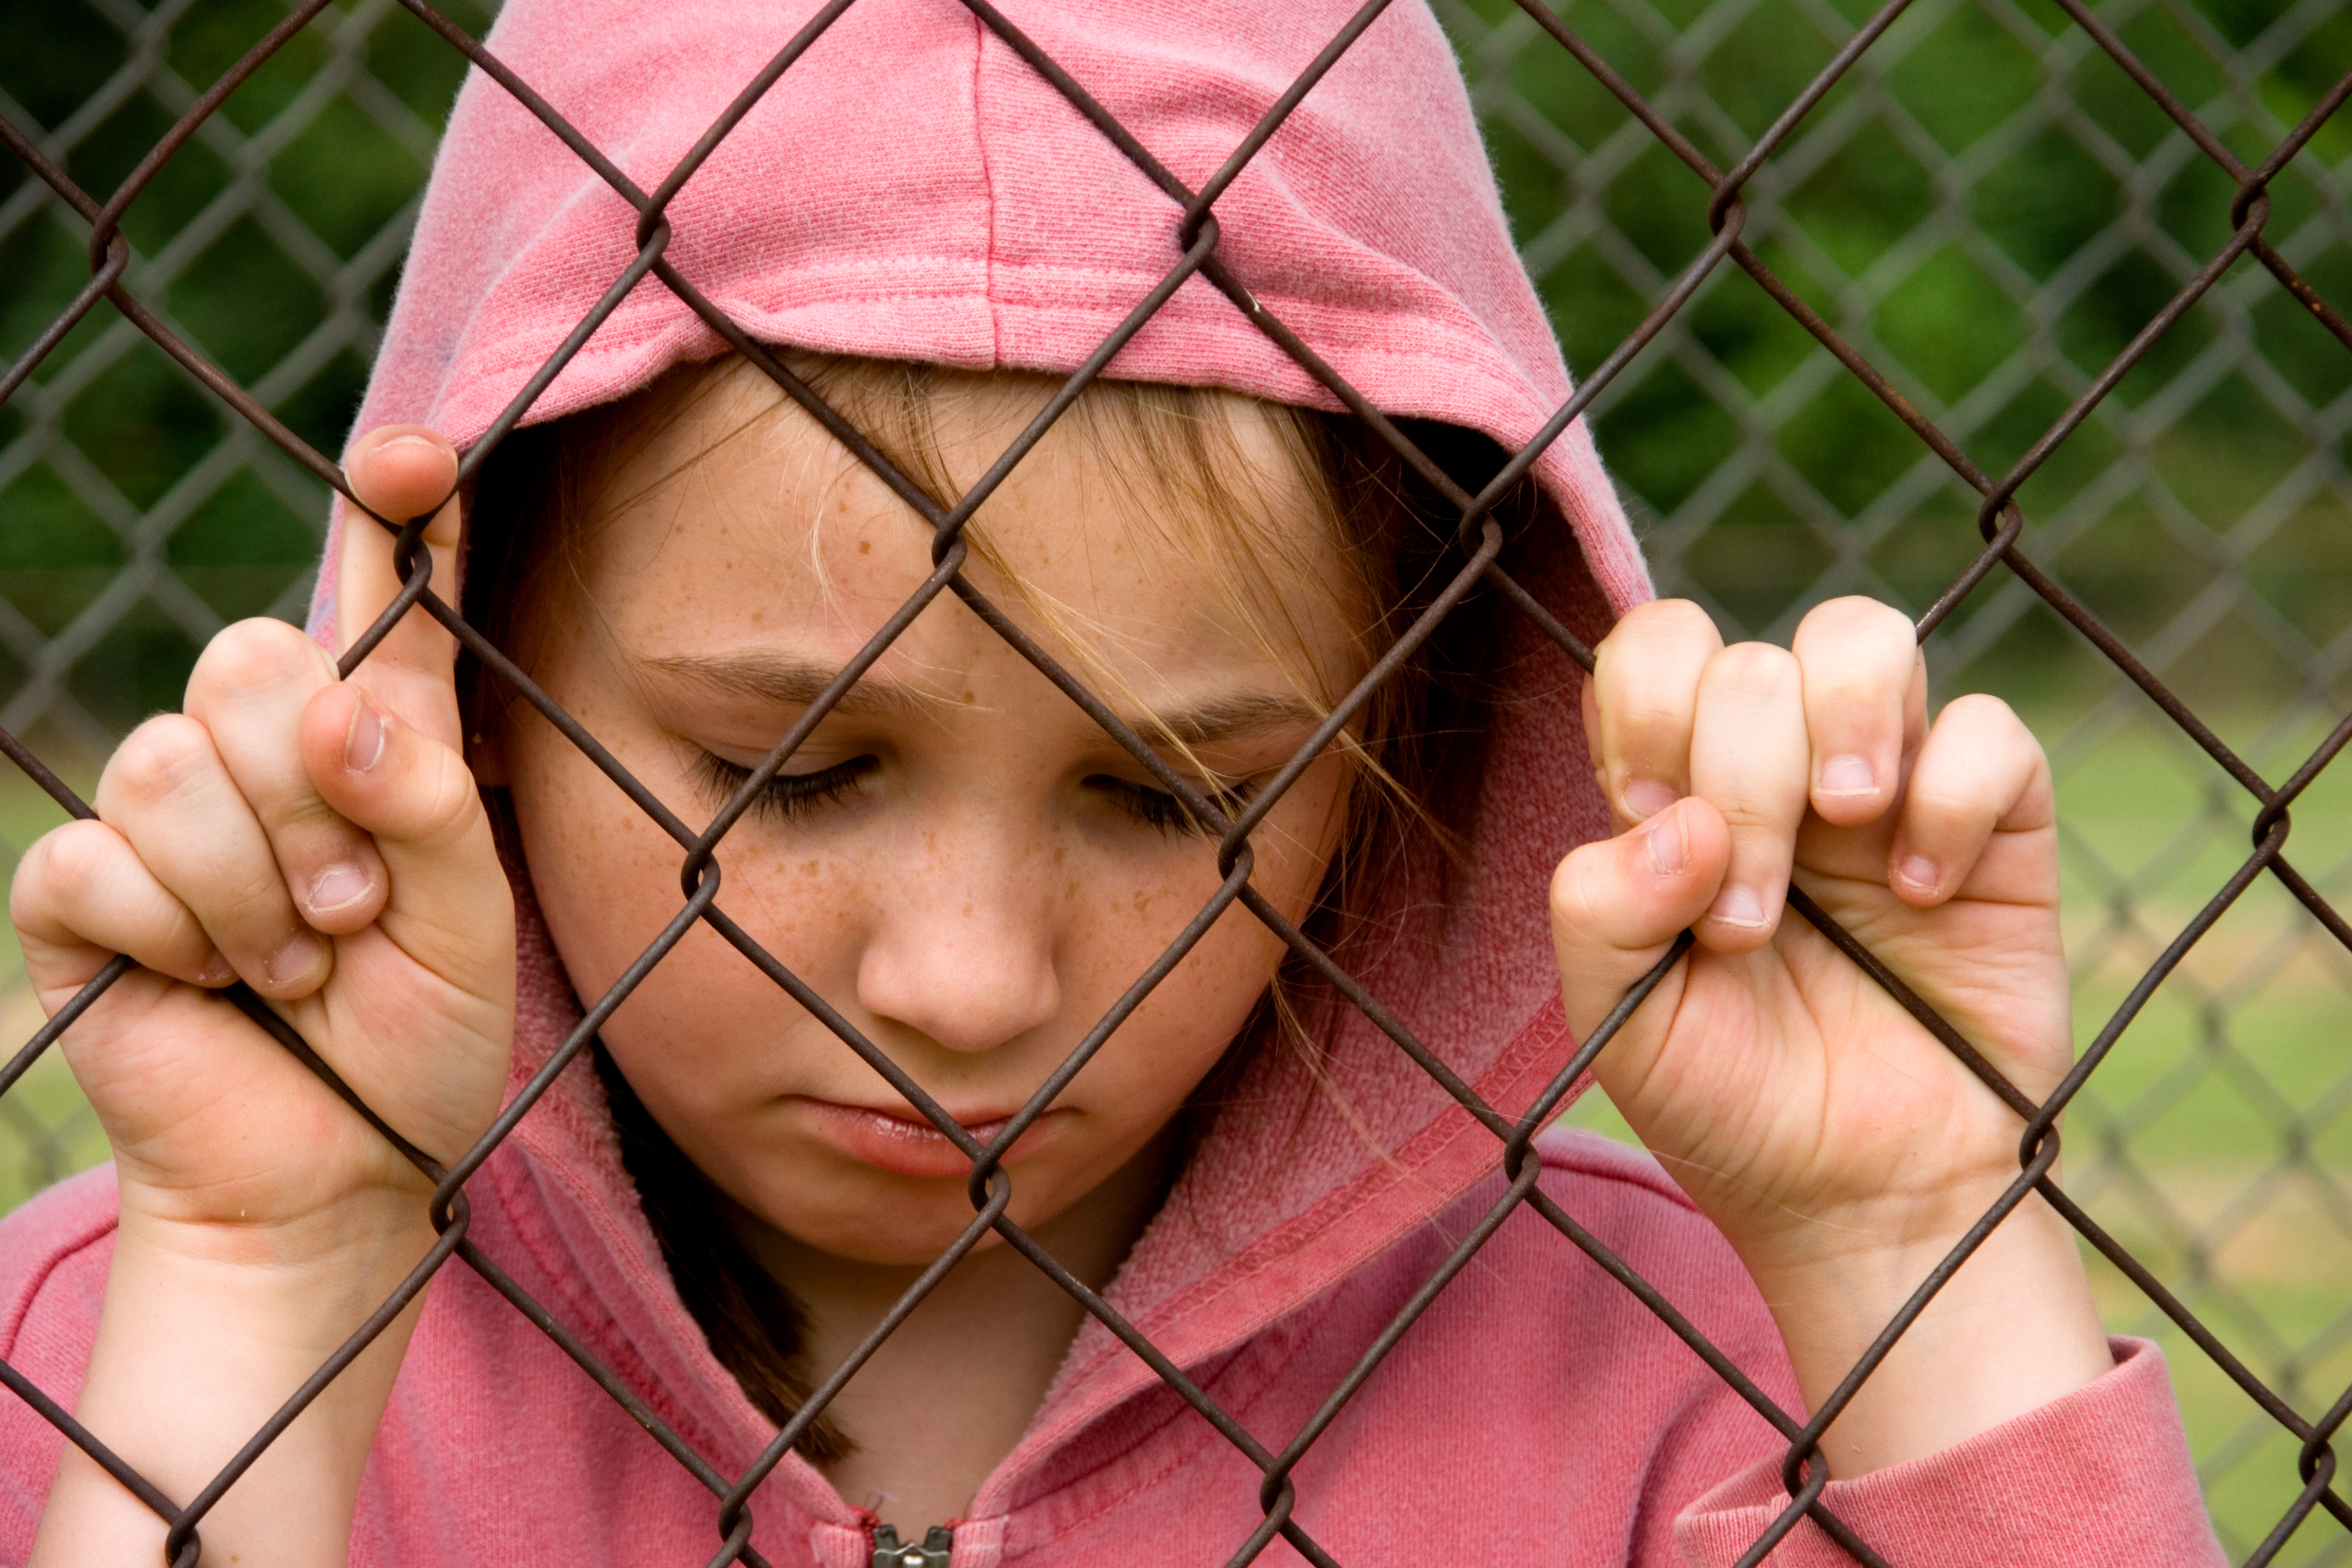 Unhappy girl behind a fence. (Getty Images)